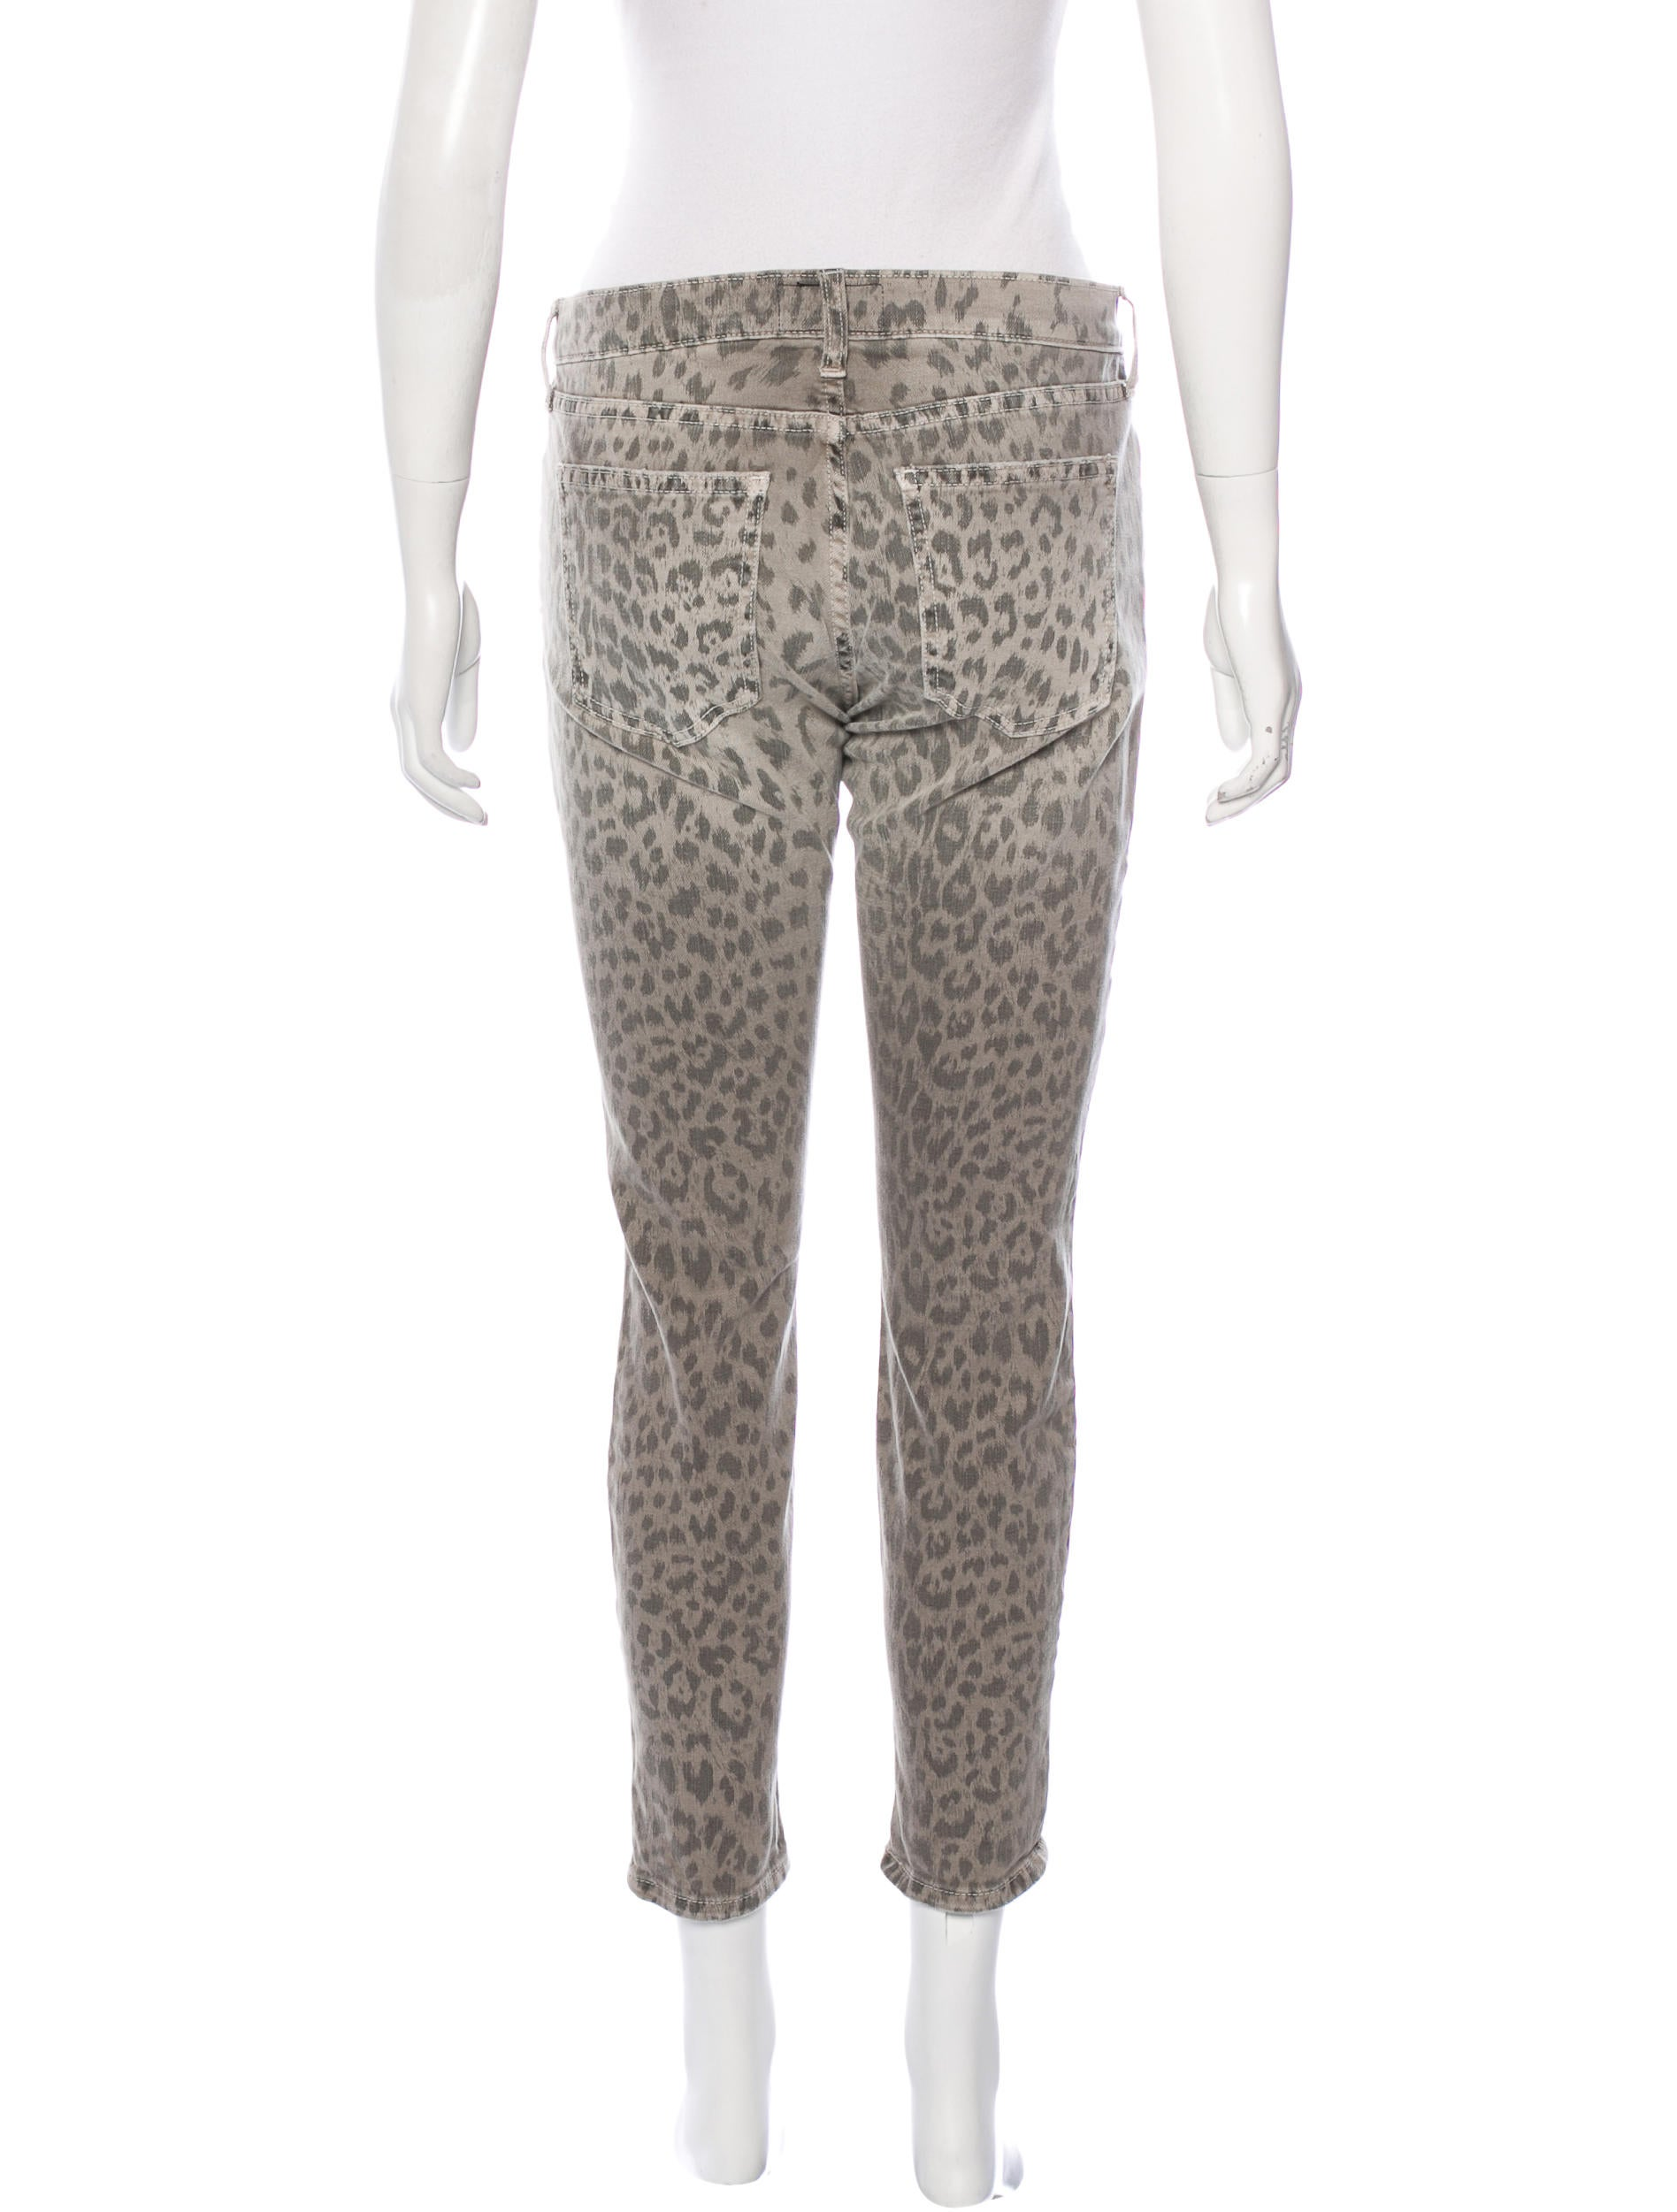 Leopard Print Jeans Trend For Fall It was a little while ago when Current/Elliott made leopard print trend in the denim world, but I am excited to tell you that for Fall , leopard print is back!